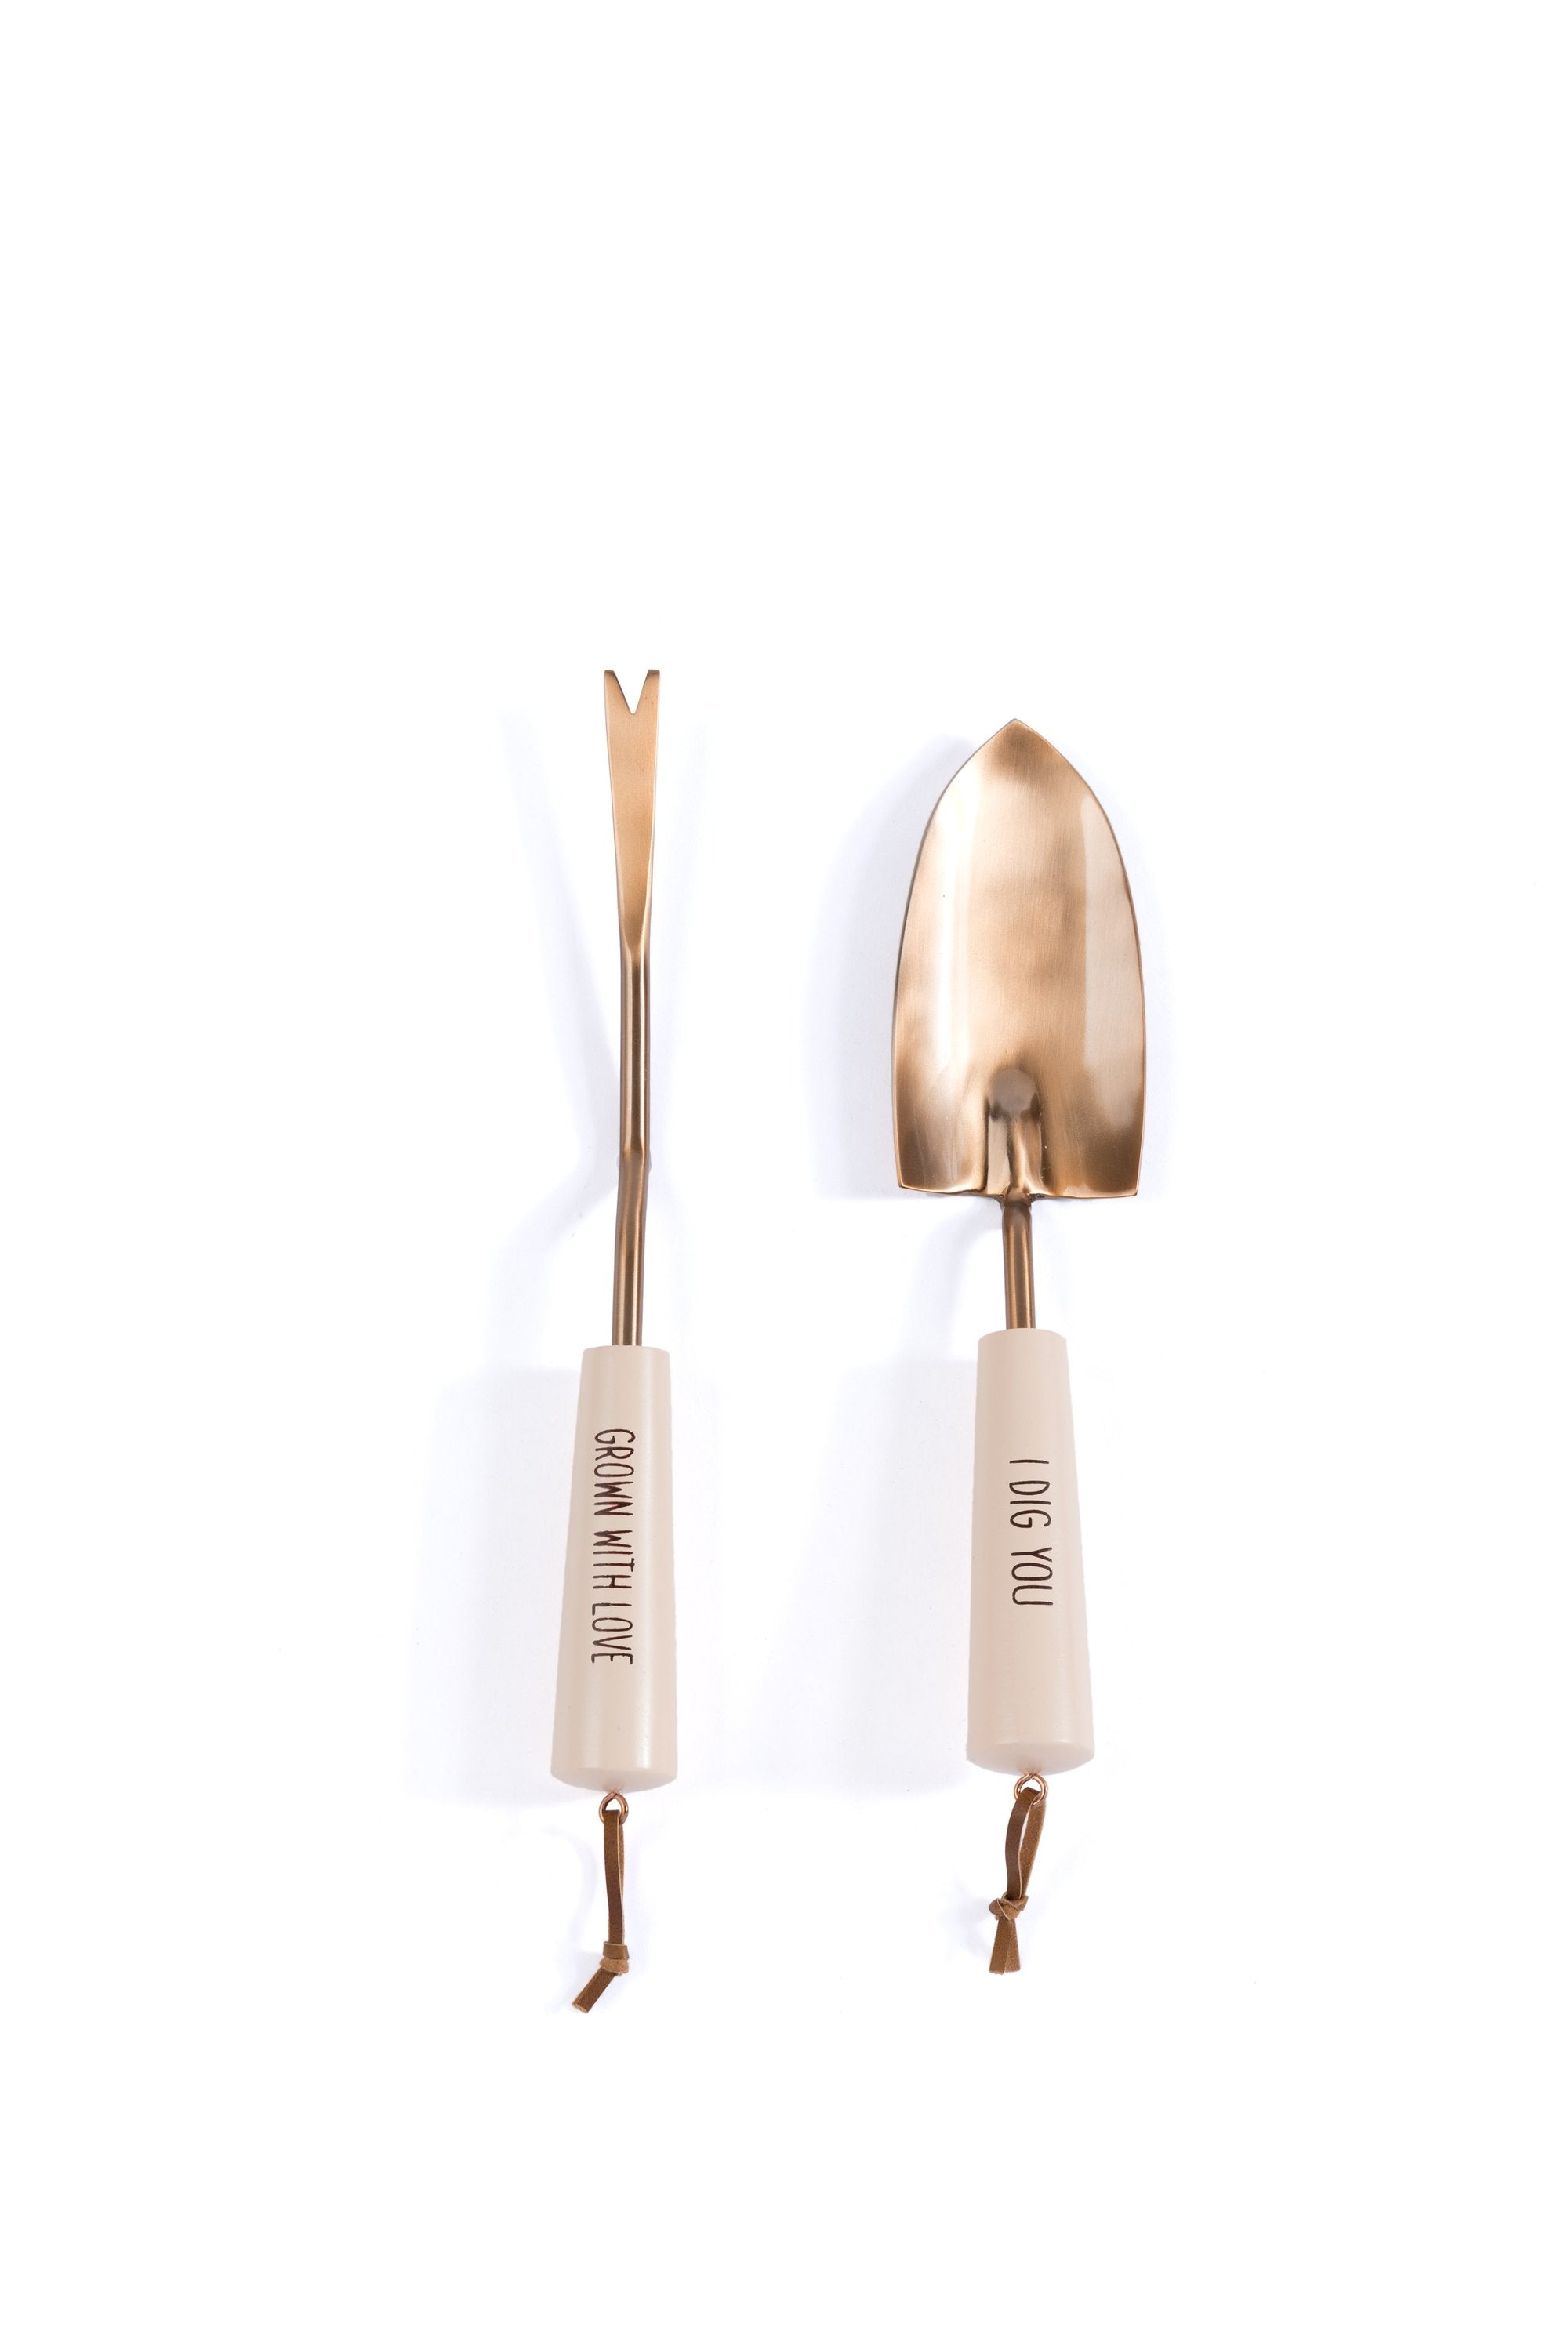 """I DIG YOU/GROW WITH LOVE"" SET OF 2 GARDEN TOOLS, BLUSH - Organic World Nation"